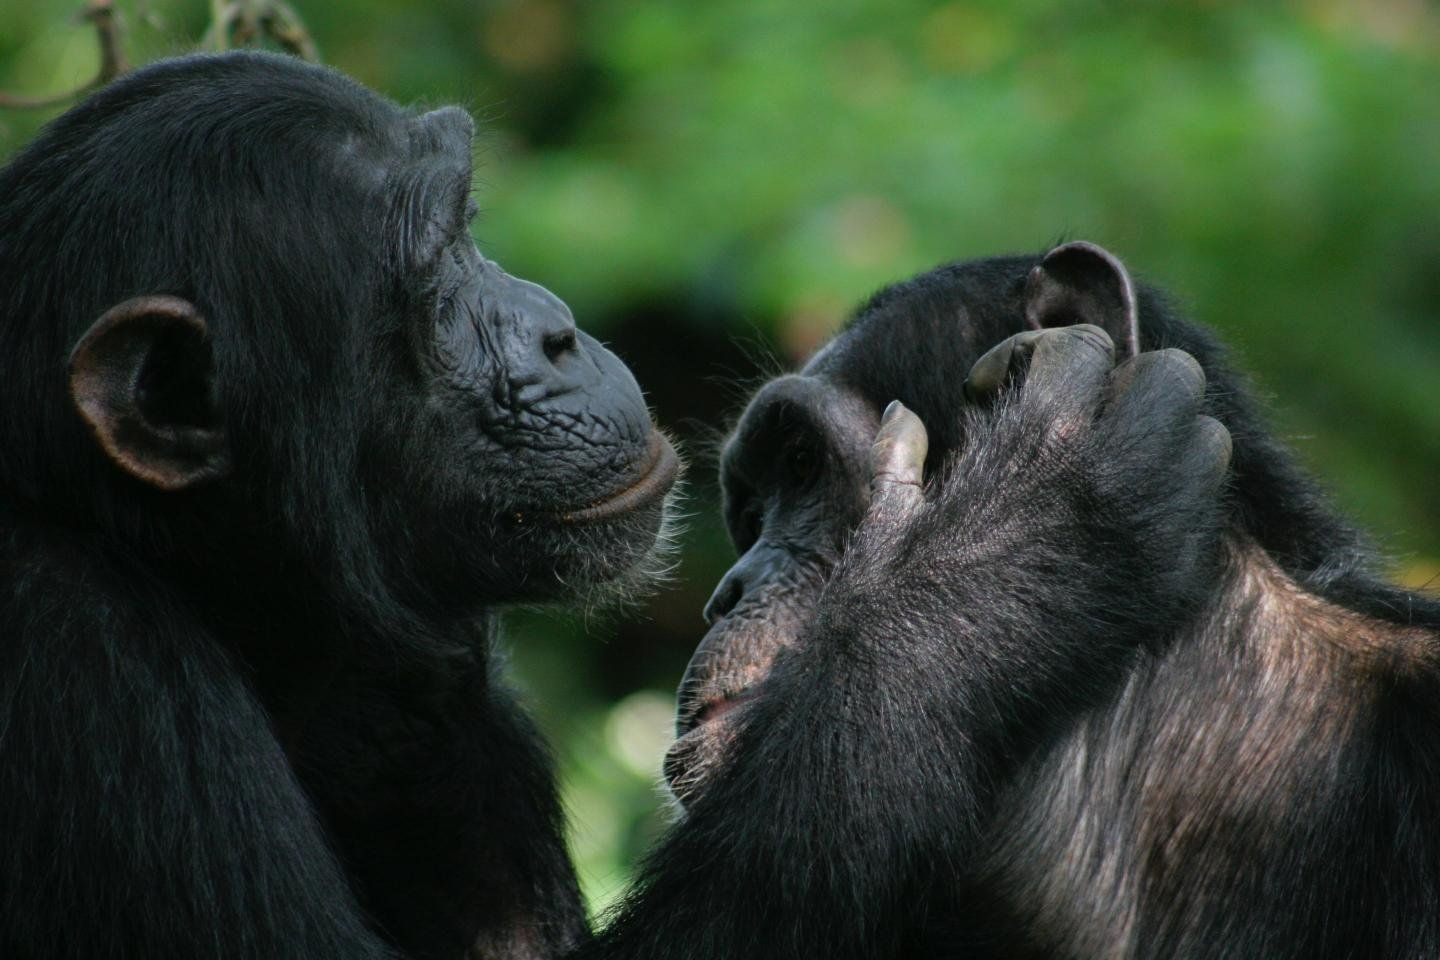 Apes and Humans Might Share Ancient Universal Body Language